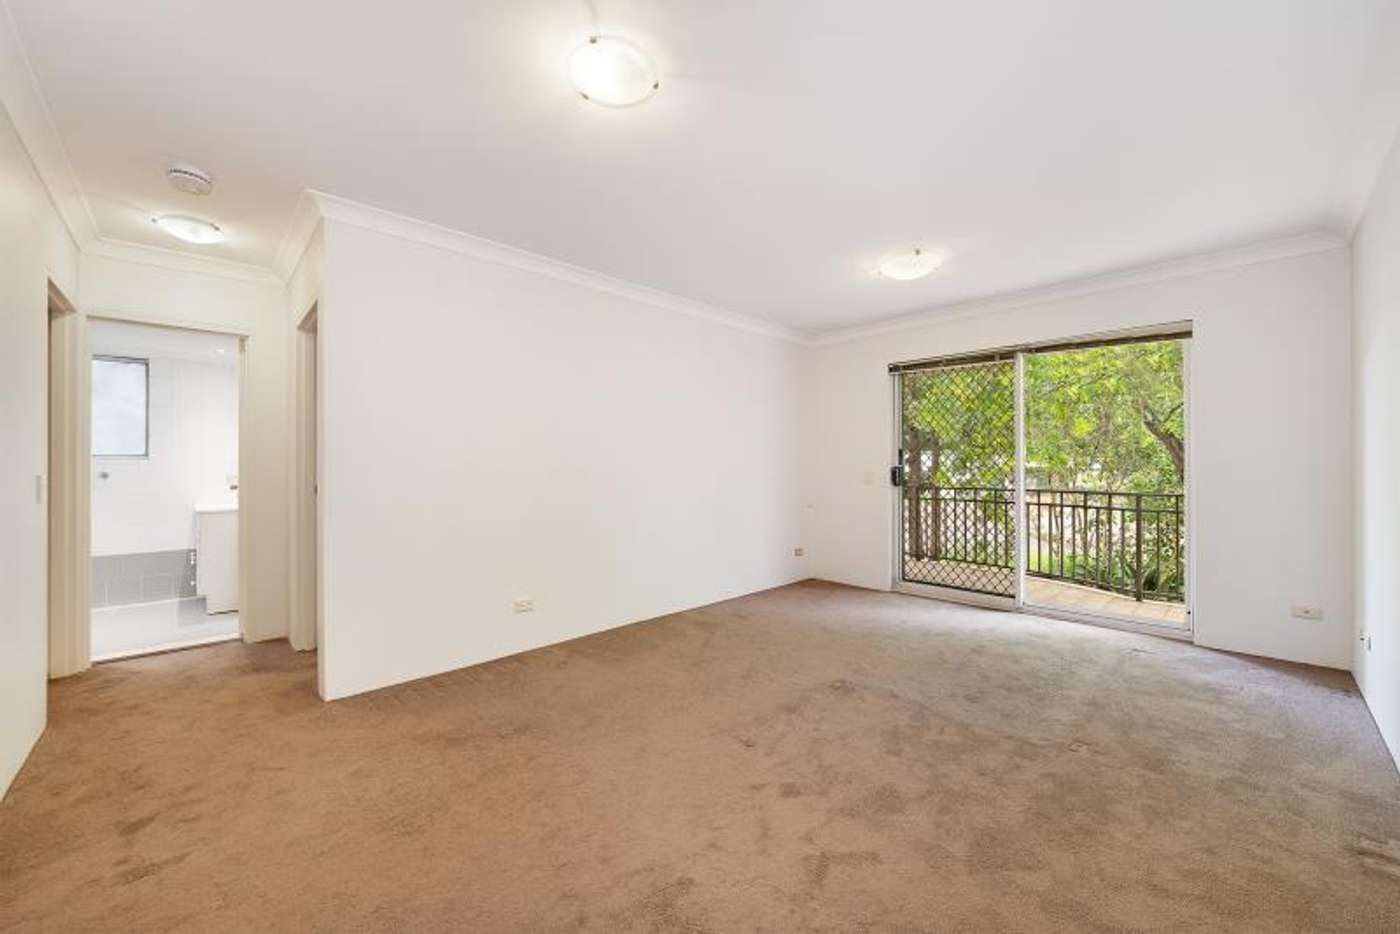 Main view of Homely apartment listing, 15/274-300 Anzac Parade, Kensington NSW 2033